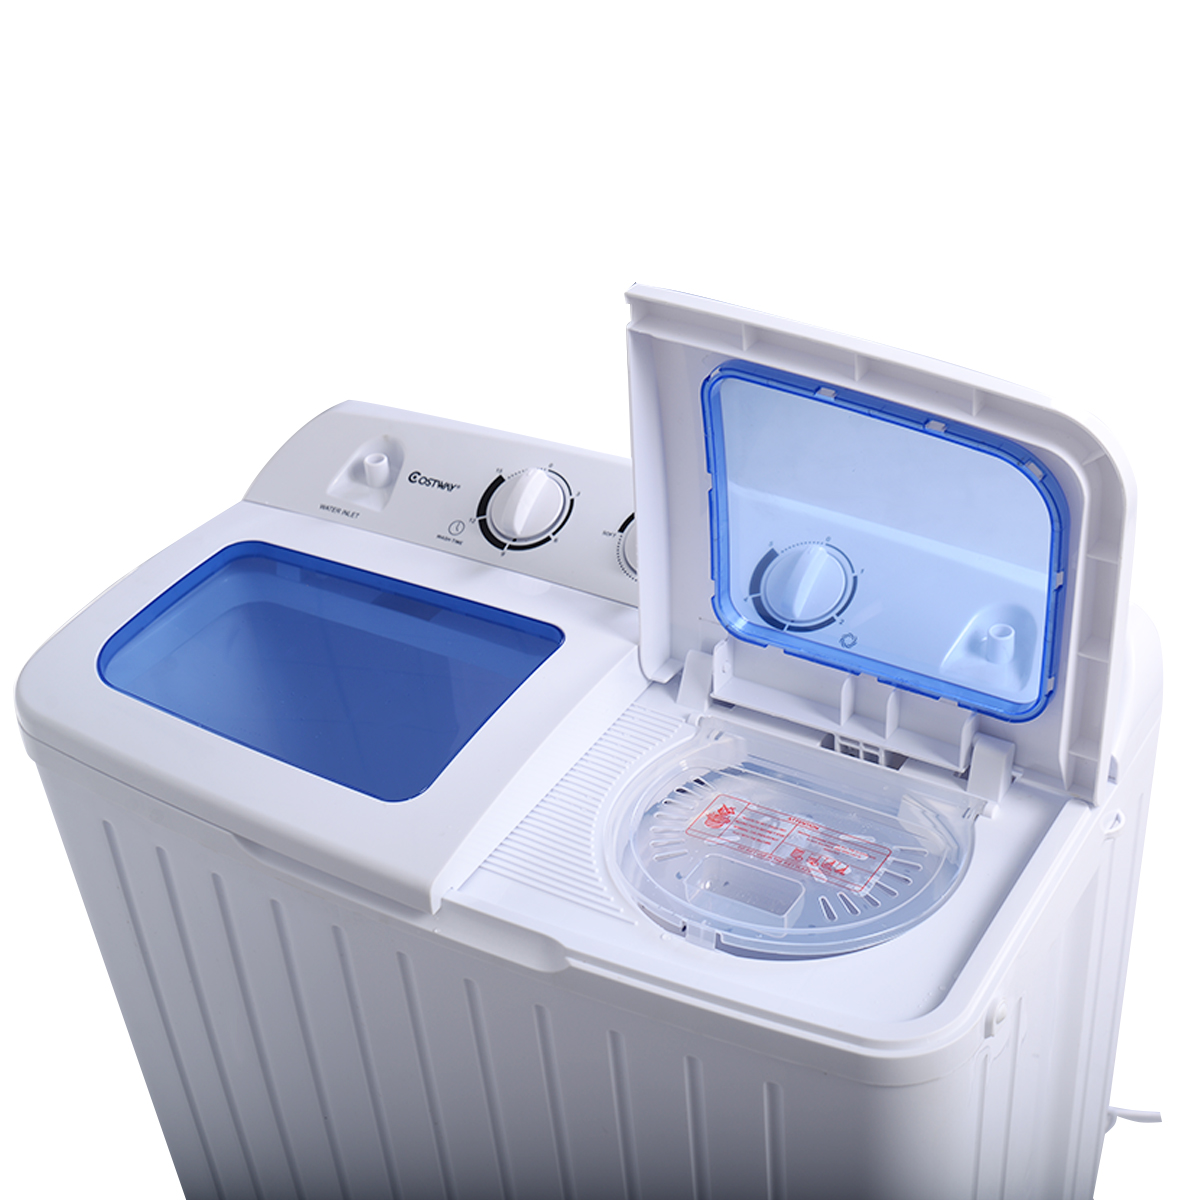 Costway Portable Mini Compact Twin Tub 17.6lb Washing Machine Washer Spin  Dryer   Walmart.com